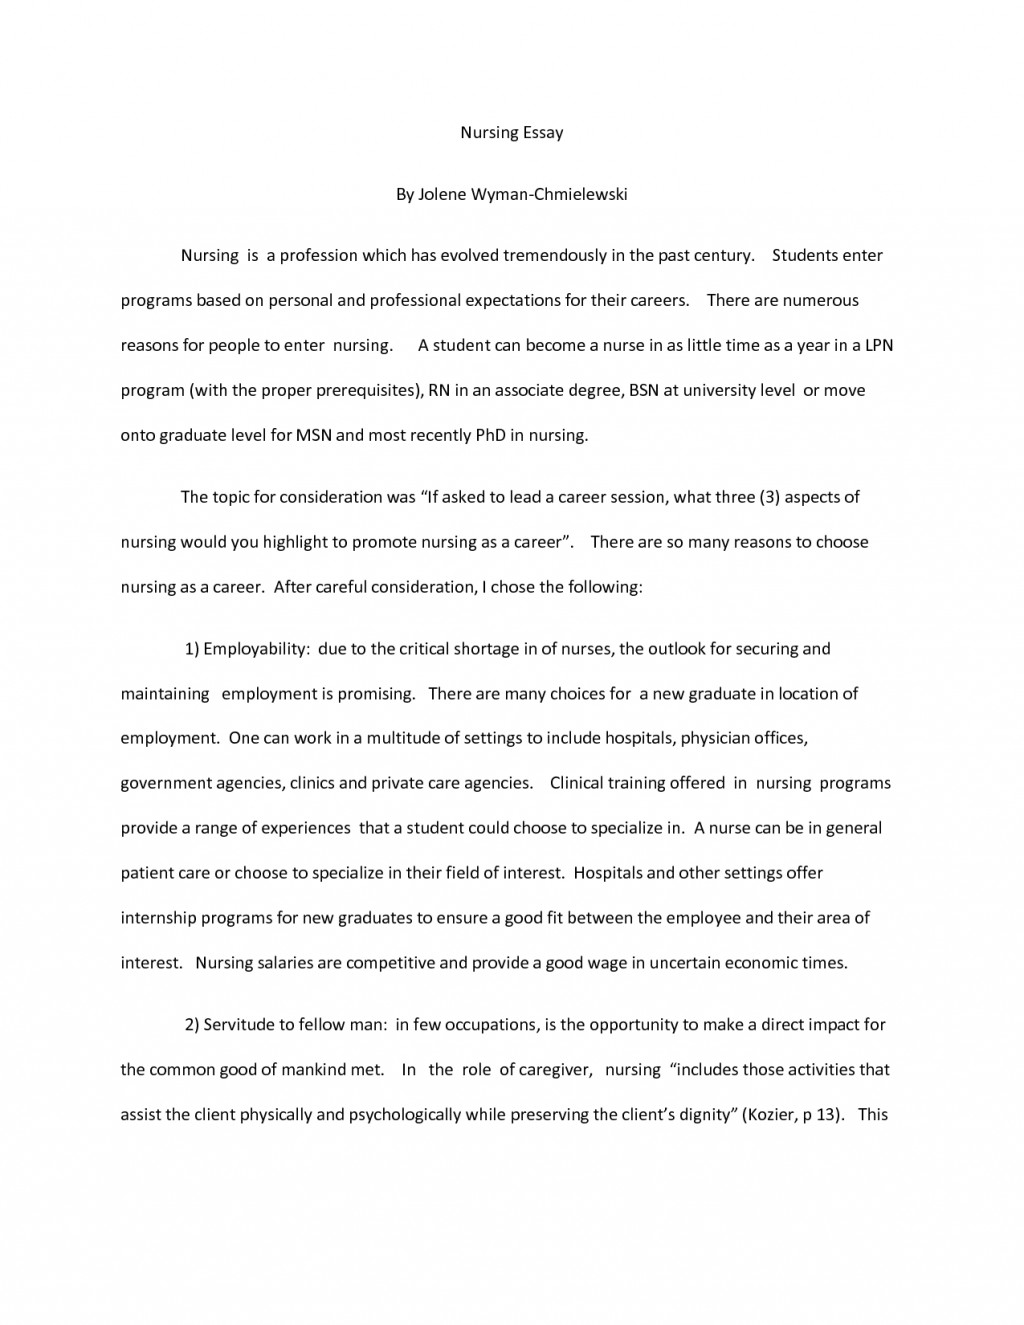 008 Nursing School Essay Sample Example Nurse Application Format Medical Samples College Examples Graduate Scholarship Essays Personal Of Great Grad Applying Awesome Statement For Large